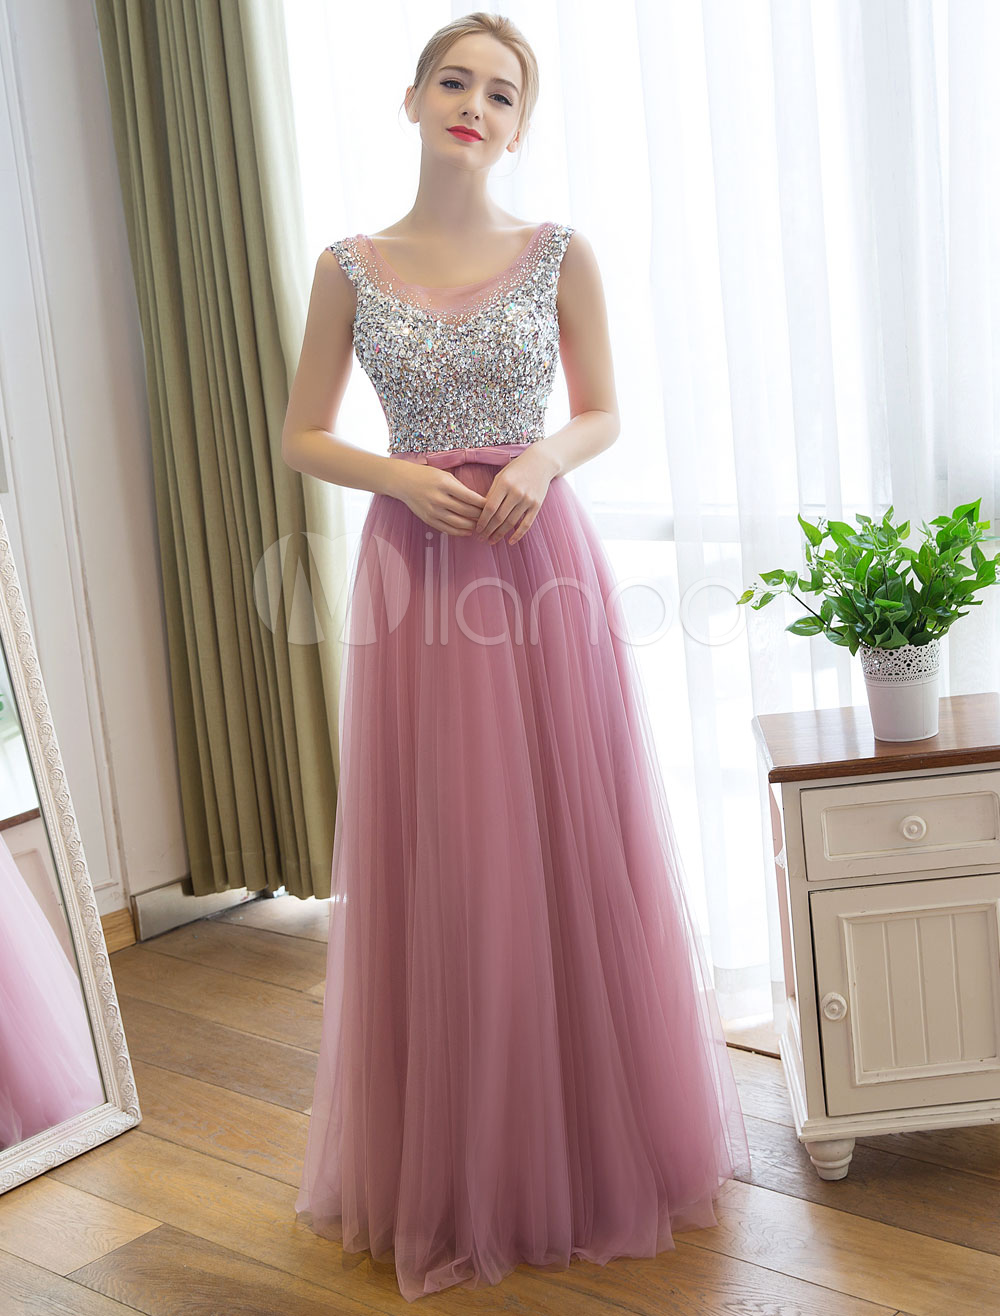 Long Prom Dress Cameo Pink Tulle Party Dresses Rhinestone Beaded Backless Bow Sash Sleeveless Maxi Occasion Dress